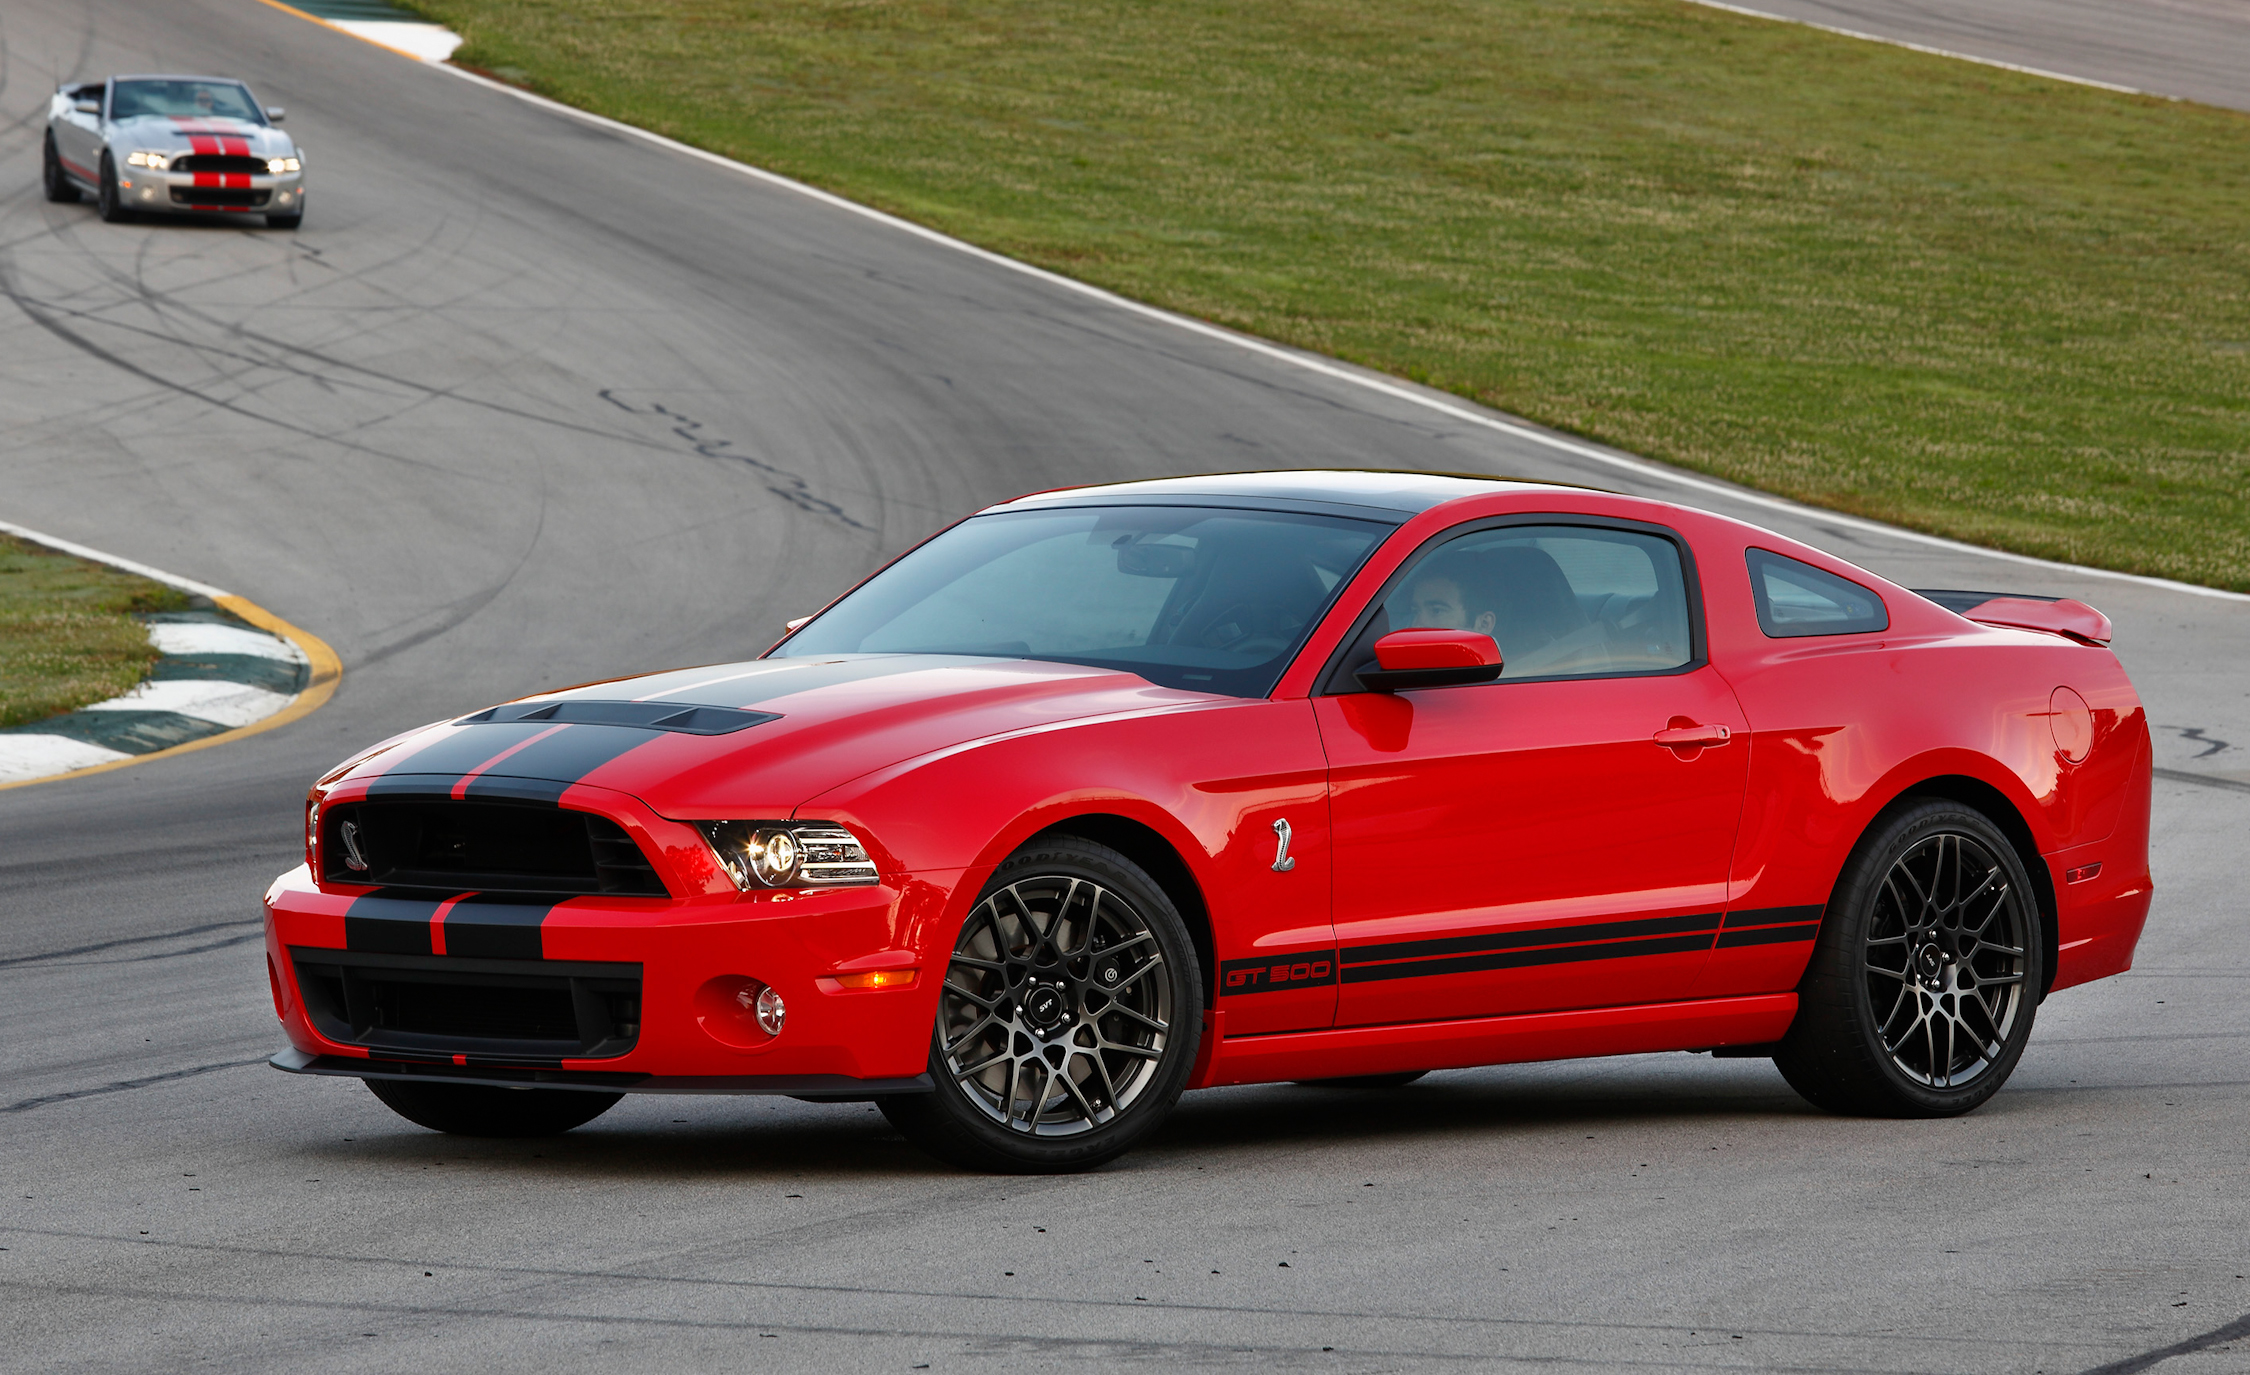 2013 Ford Mustang Shelby GT500 Red Exterior Front And Side (View 44 of 47)